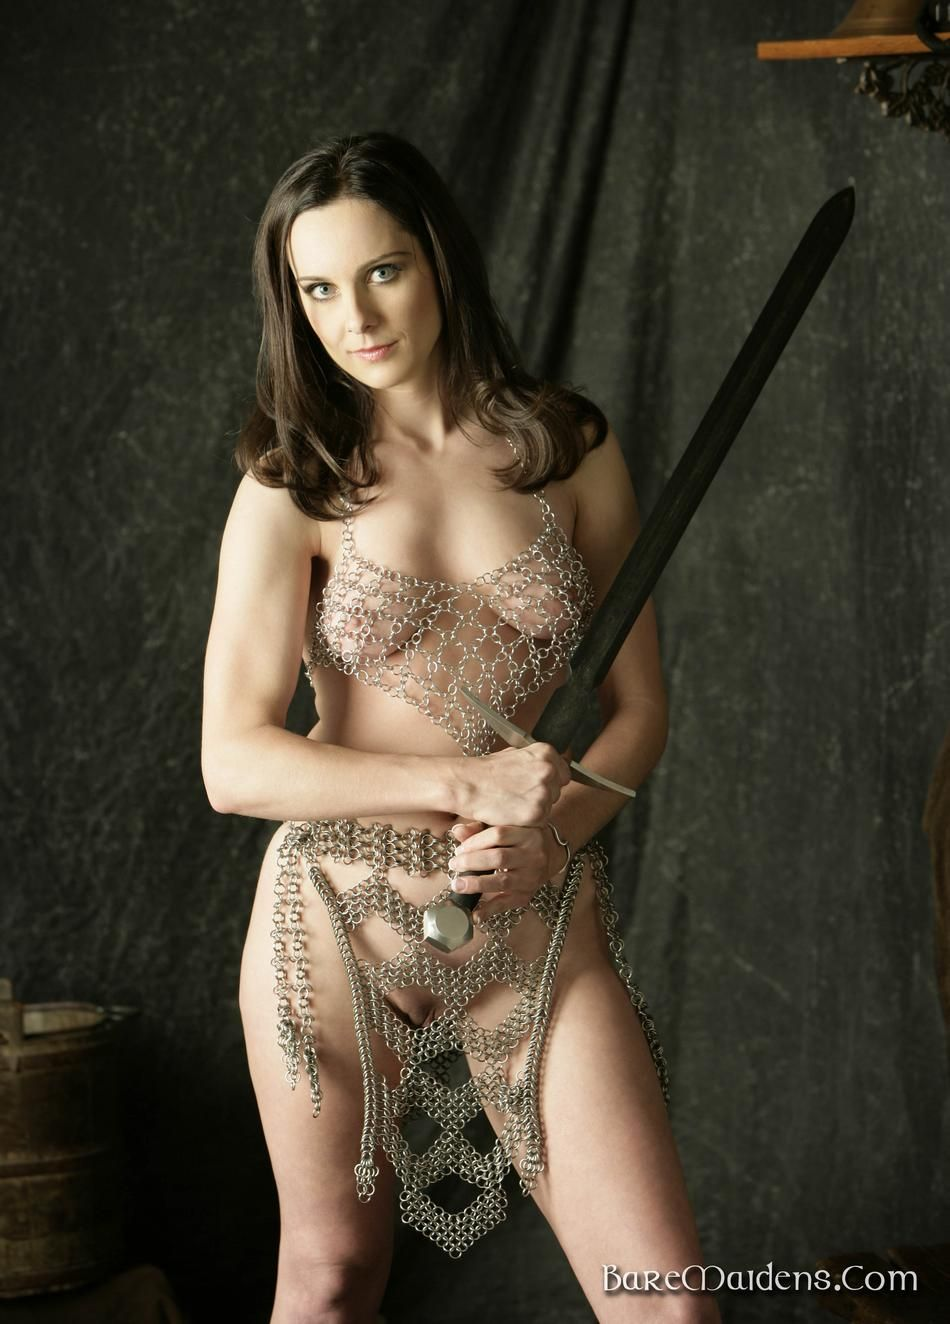 Nearly Naked Armor Google Less Armor Girl gallery-24272 | My Hotz Pic